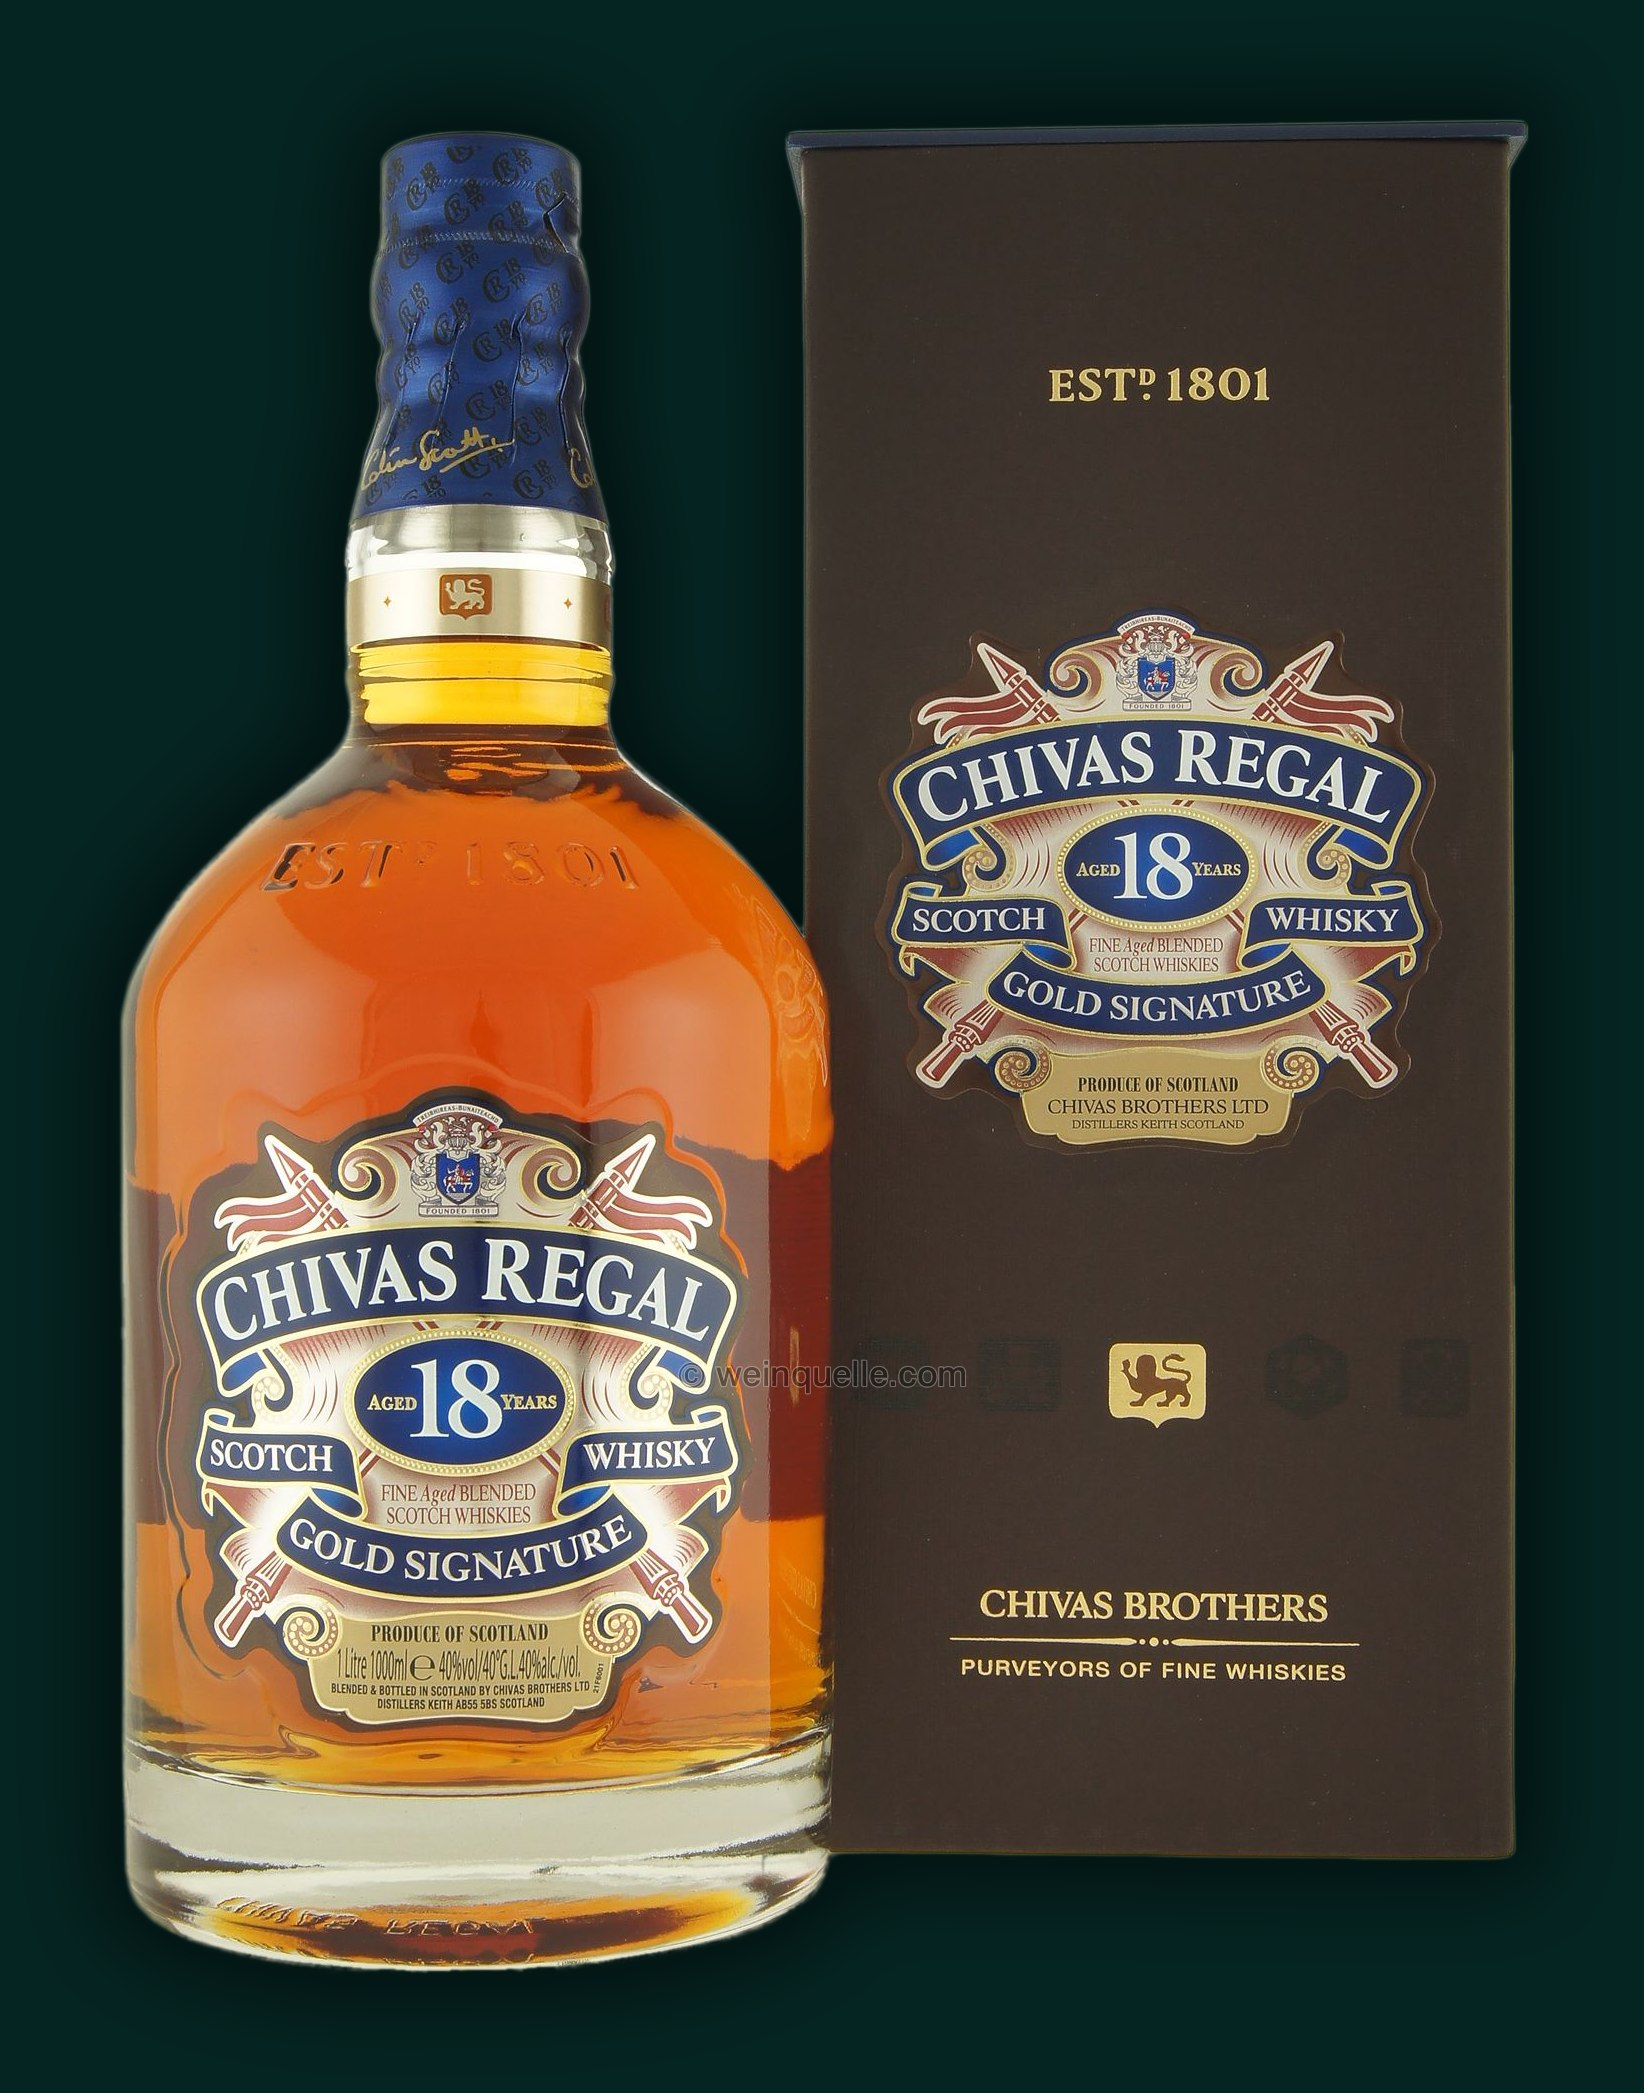 Chivas regal 18 years gold signature 1 0 liter 76 95 weinquelle l hmann - Chivas regal 18 1 liter price ...